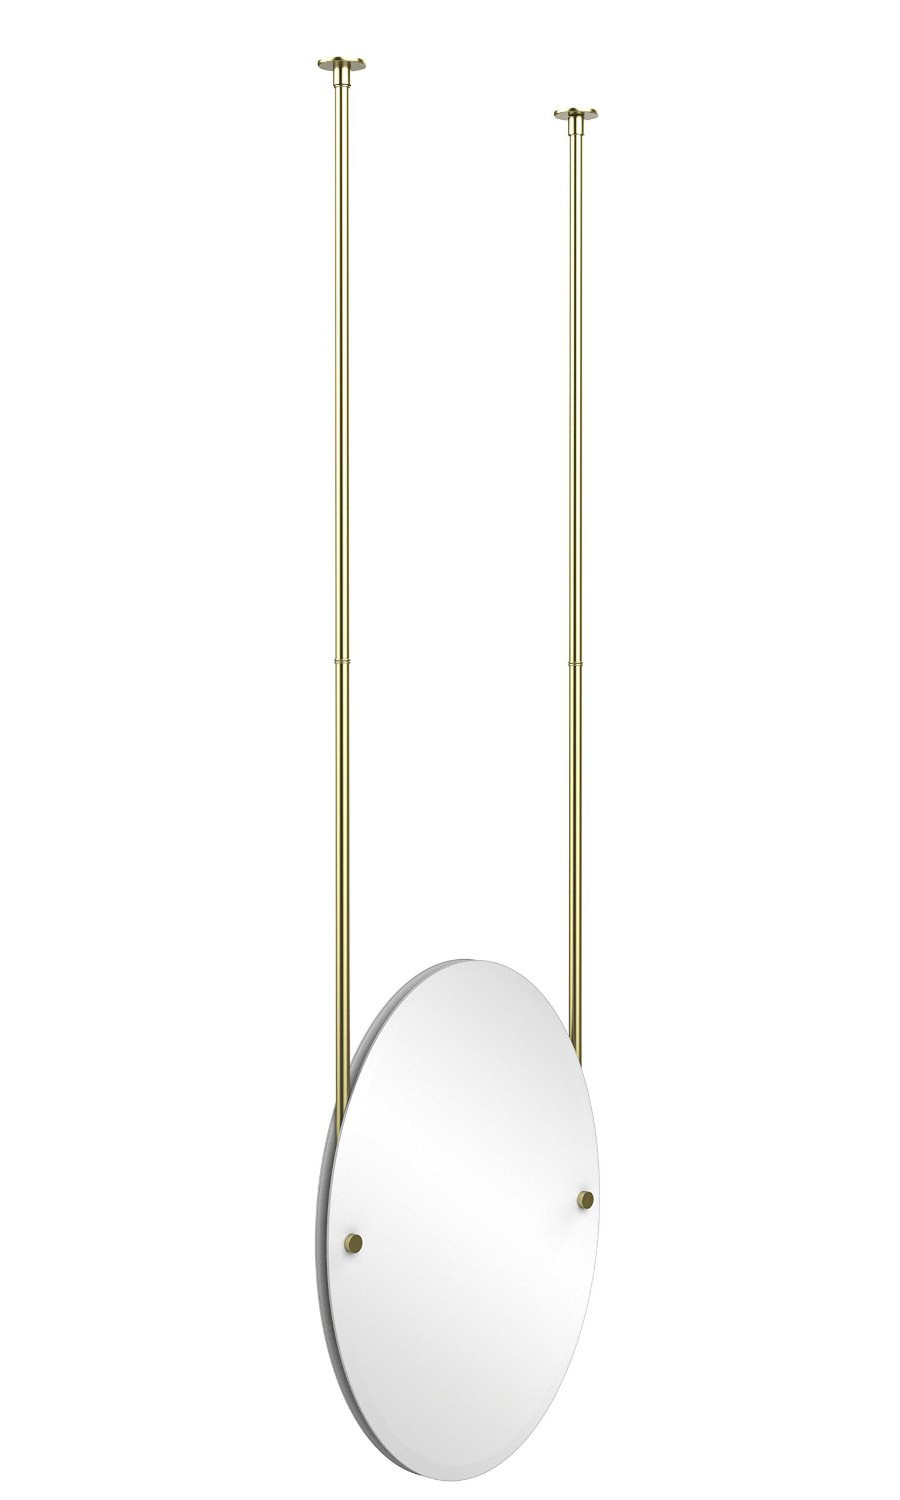 Allied Brass Ch 91 Oval Ceiling Hung Mirror With Solid